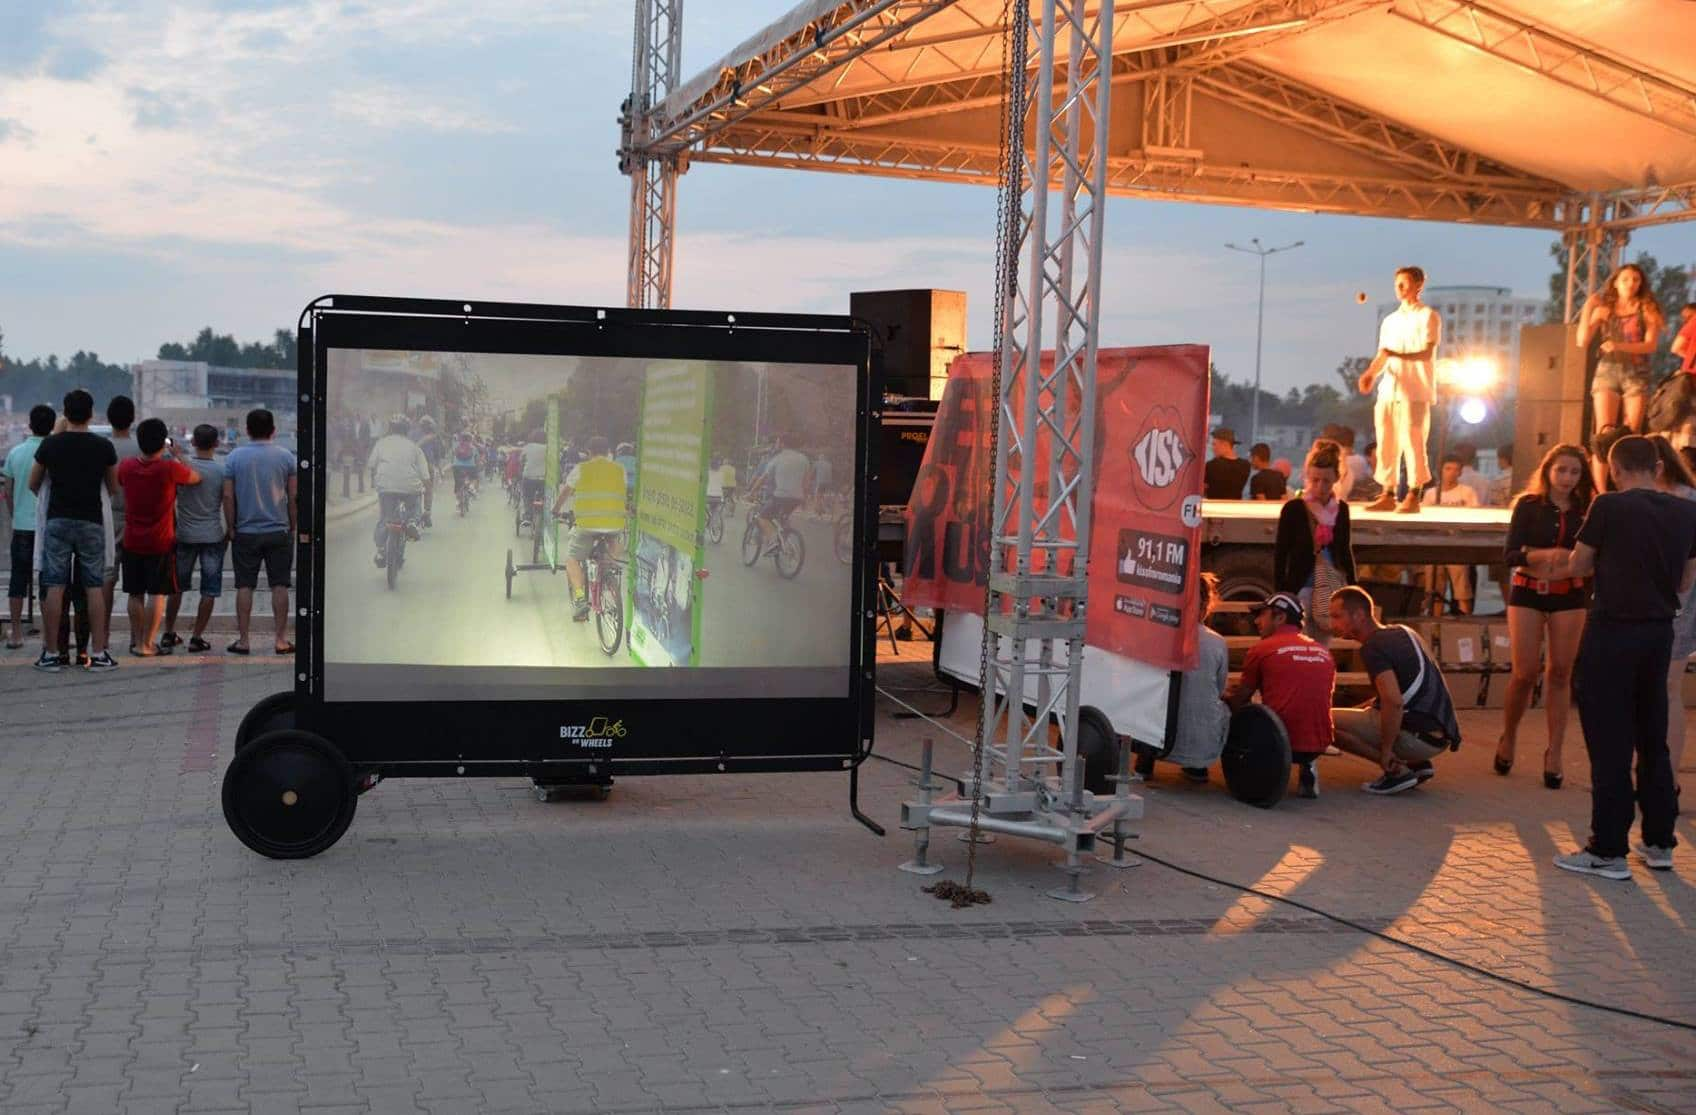 AdBicy video mobile billboard by Bizz On Wheels